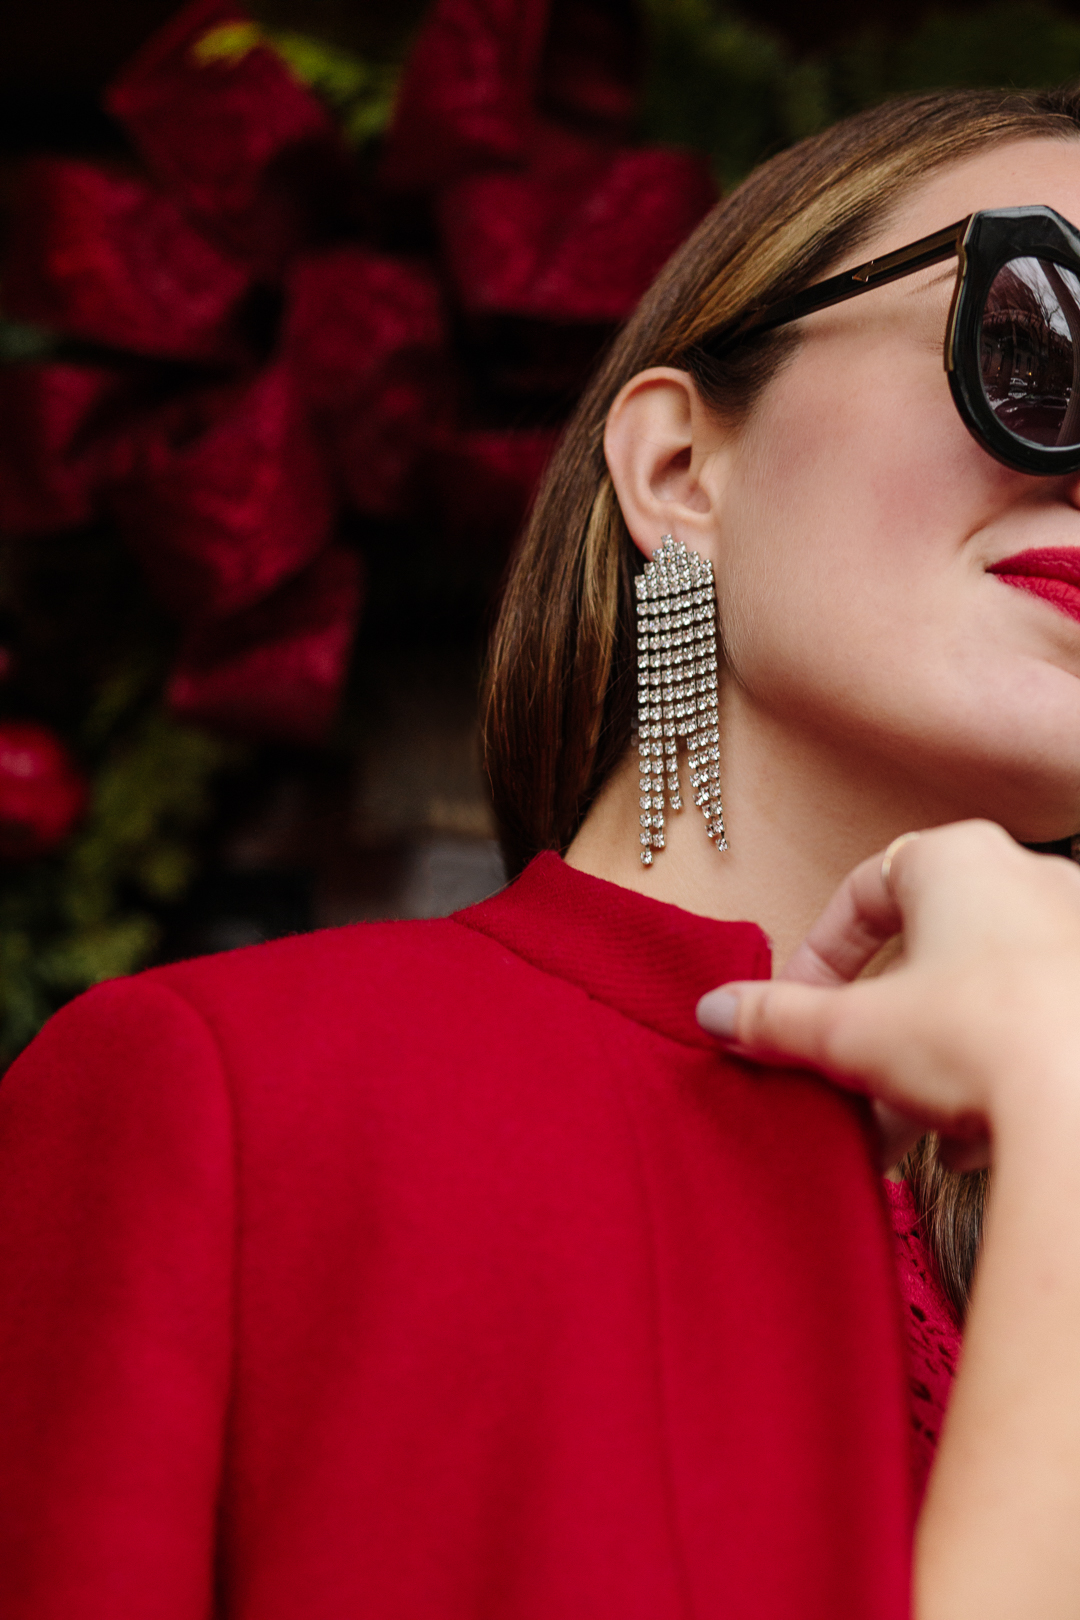 statement earrings from Neiman Marcus